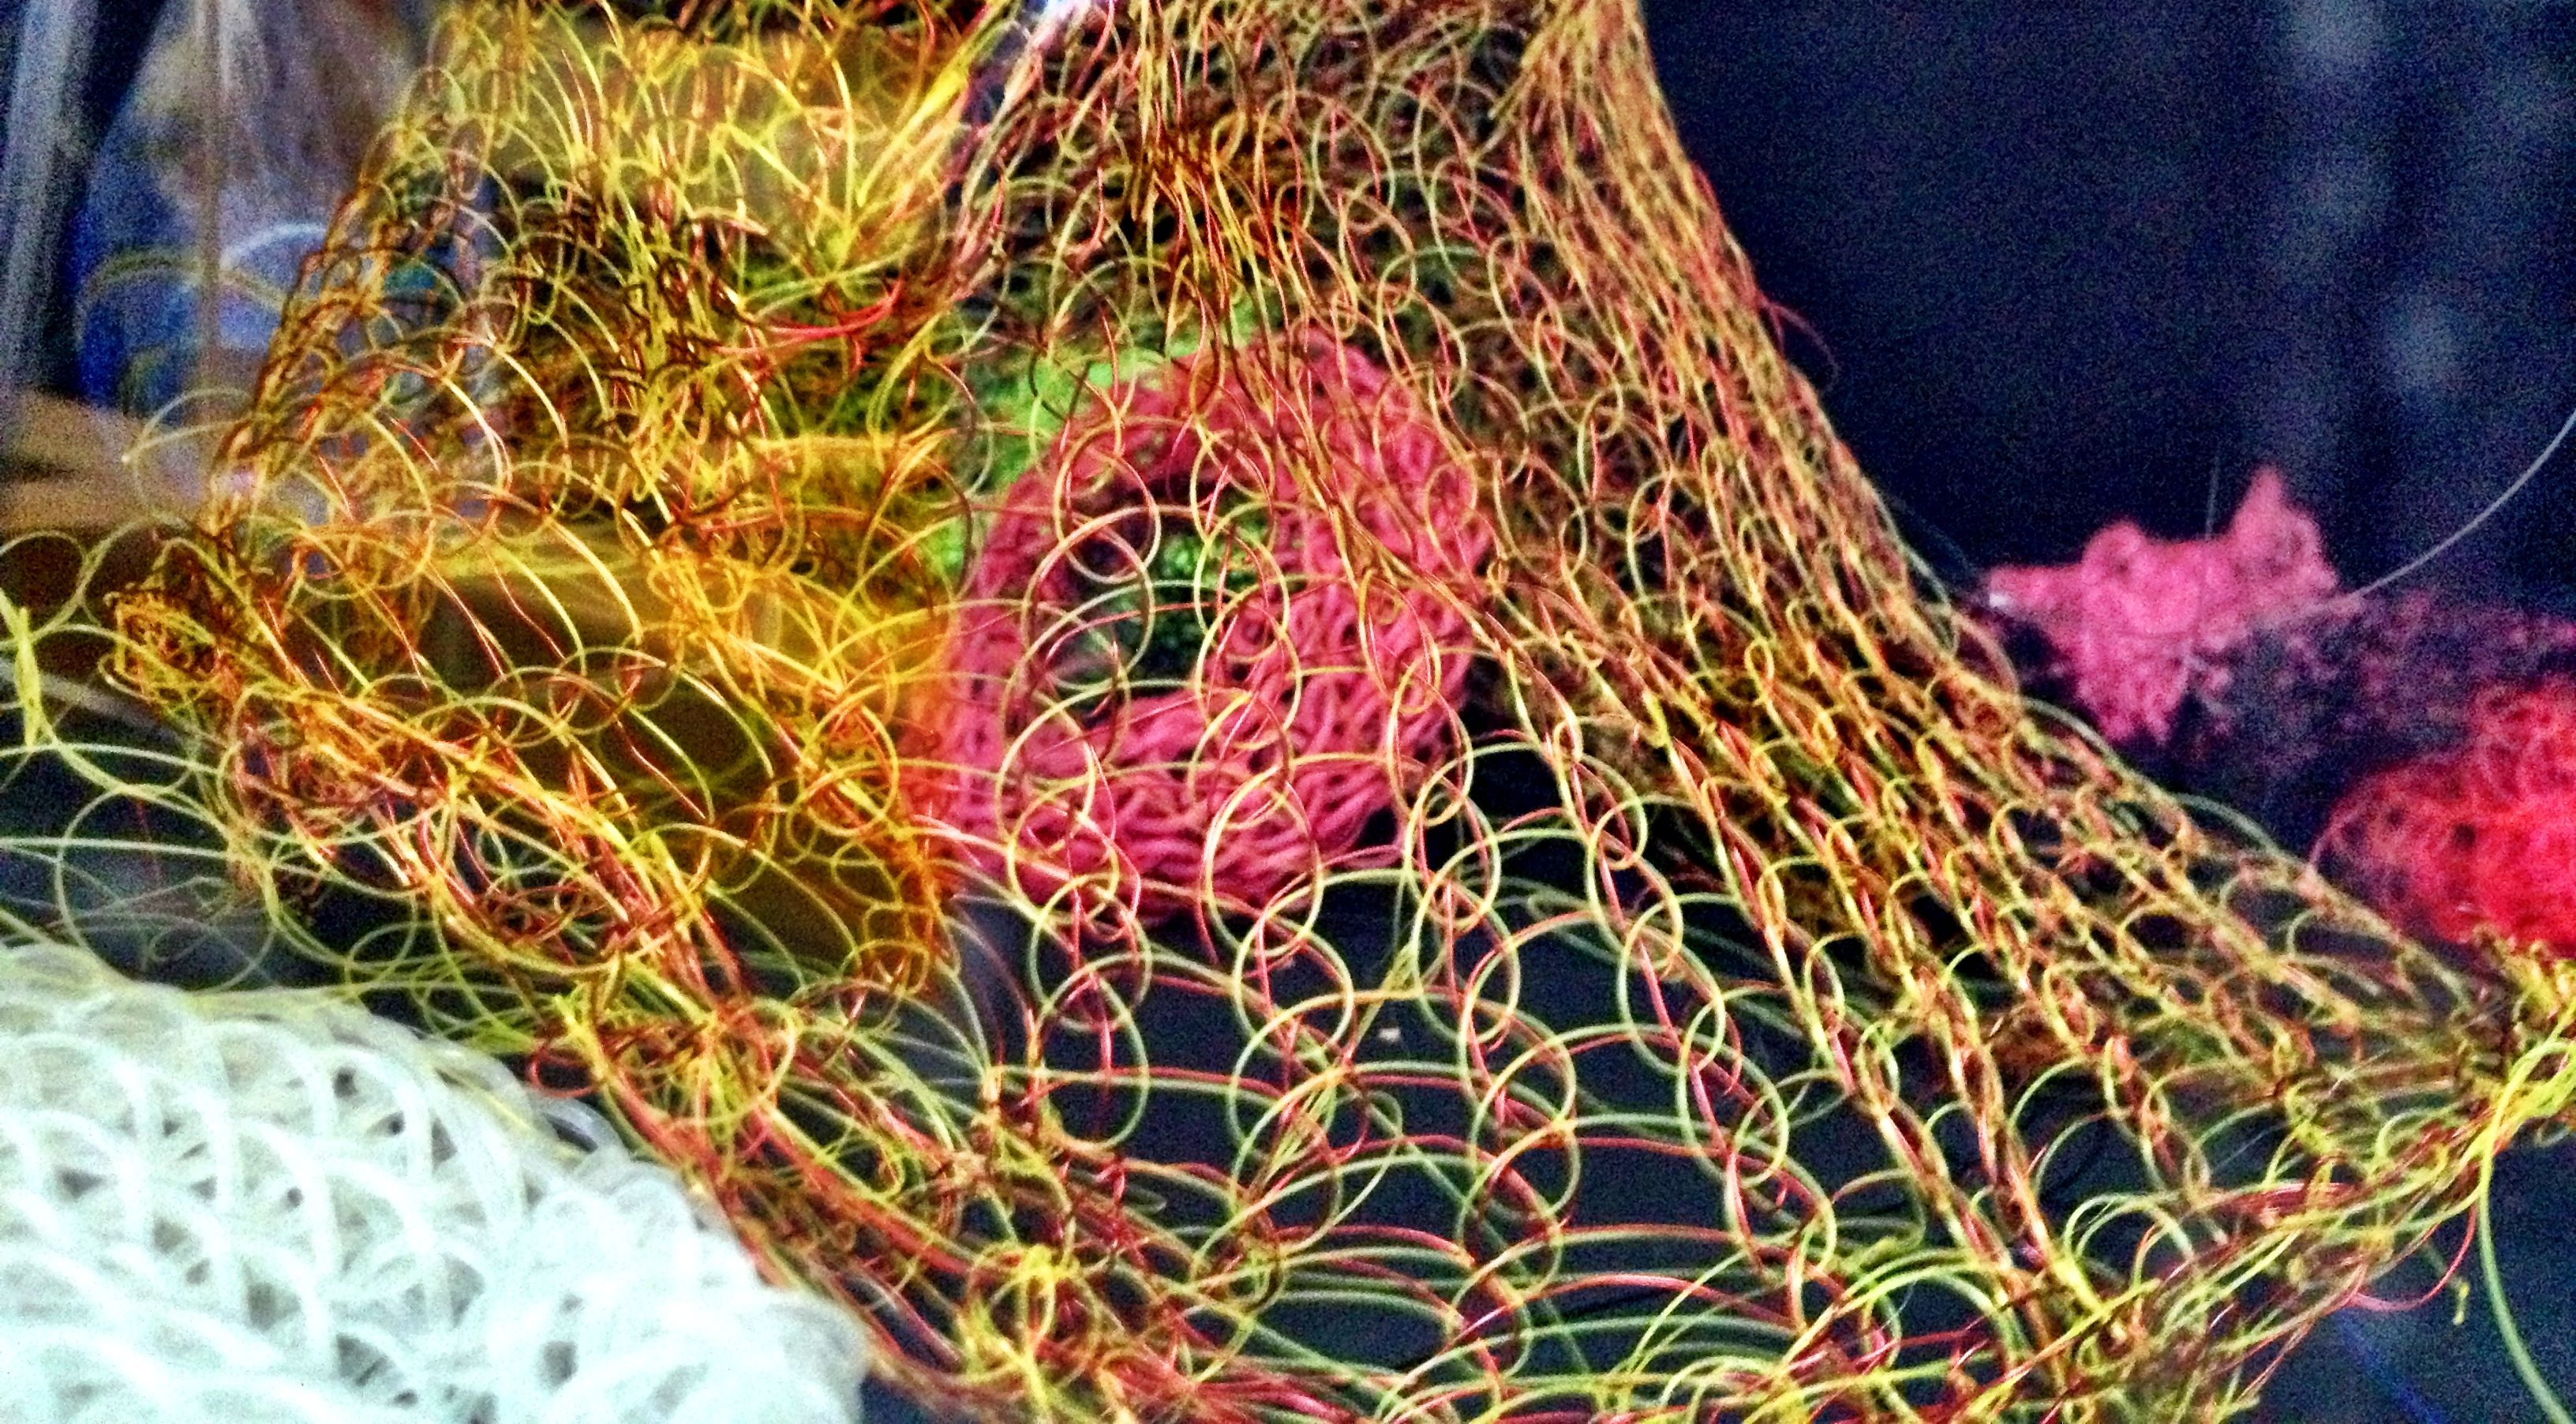 Jelly yarn and wire jellyfish knitted